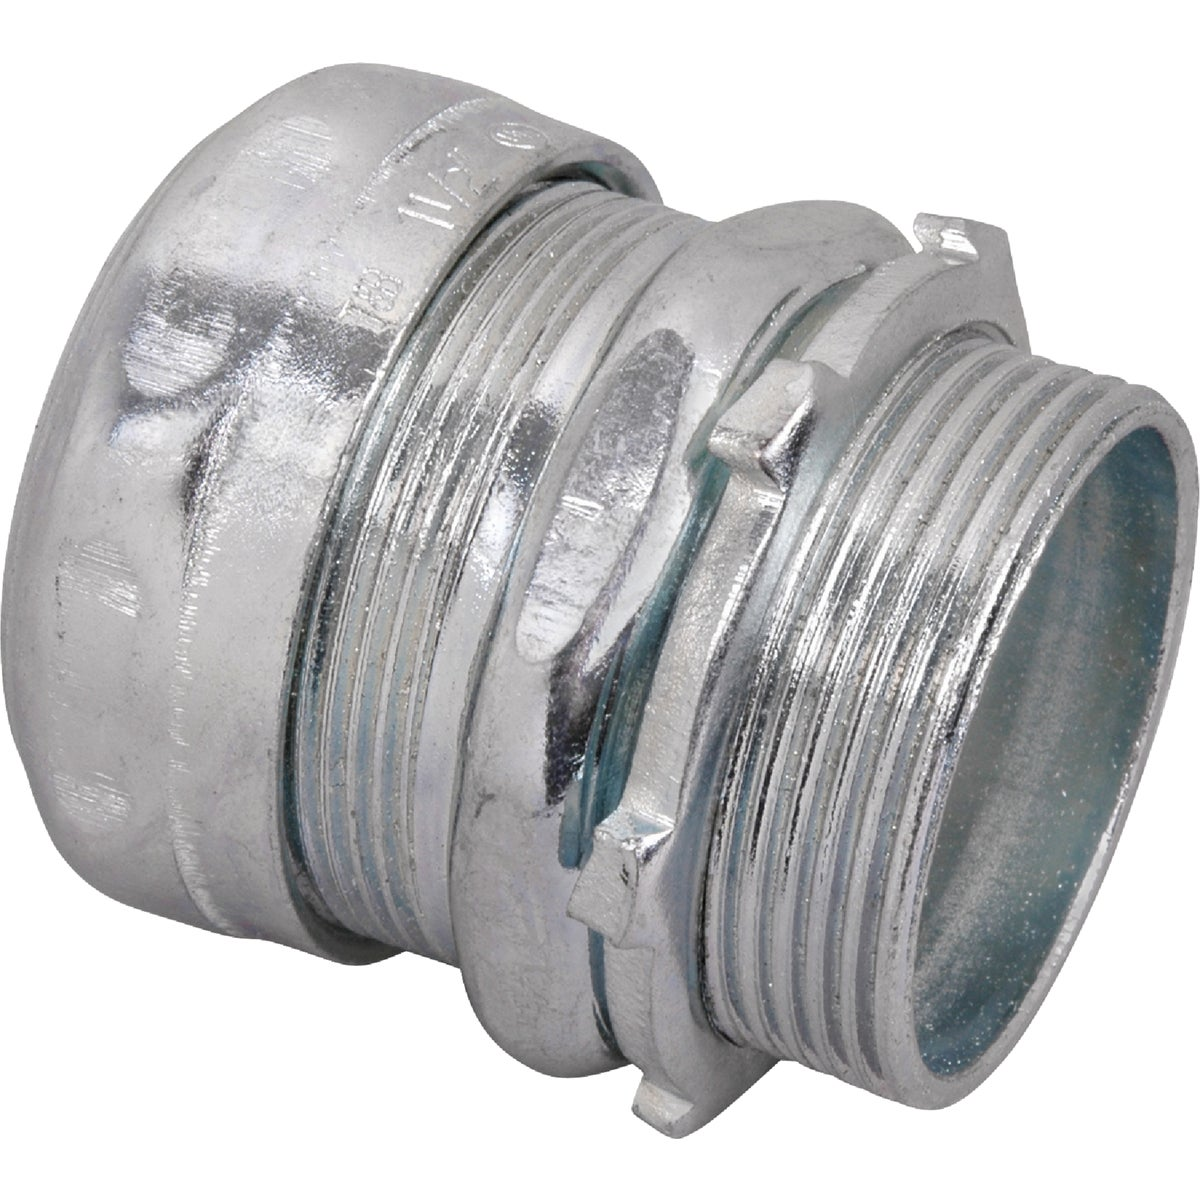 "1-1/2"" EMT CONNECTOR - TC115-SC-1 by Thomas & Betts"